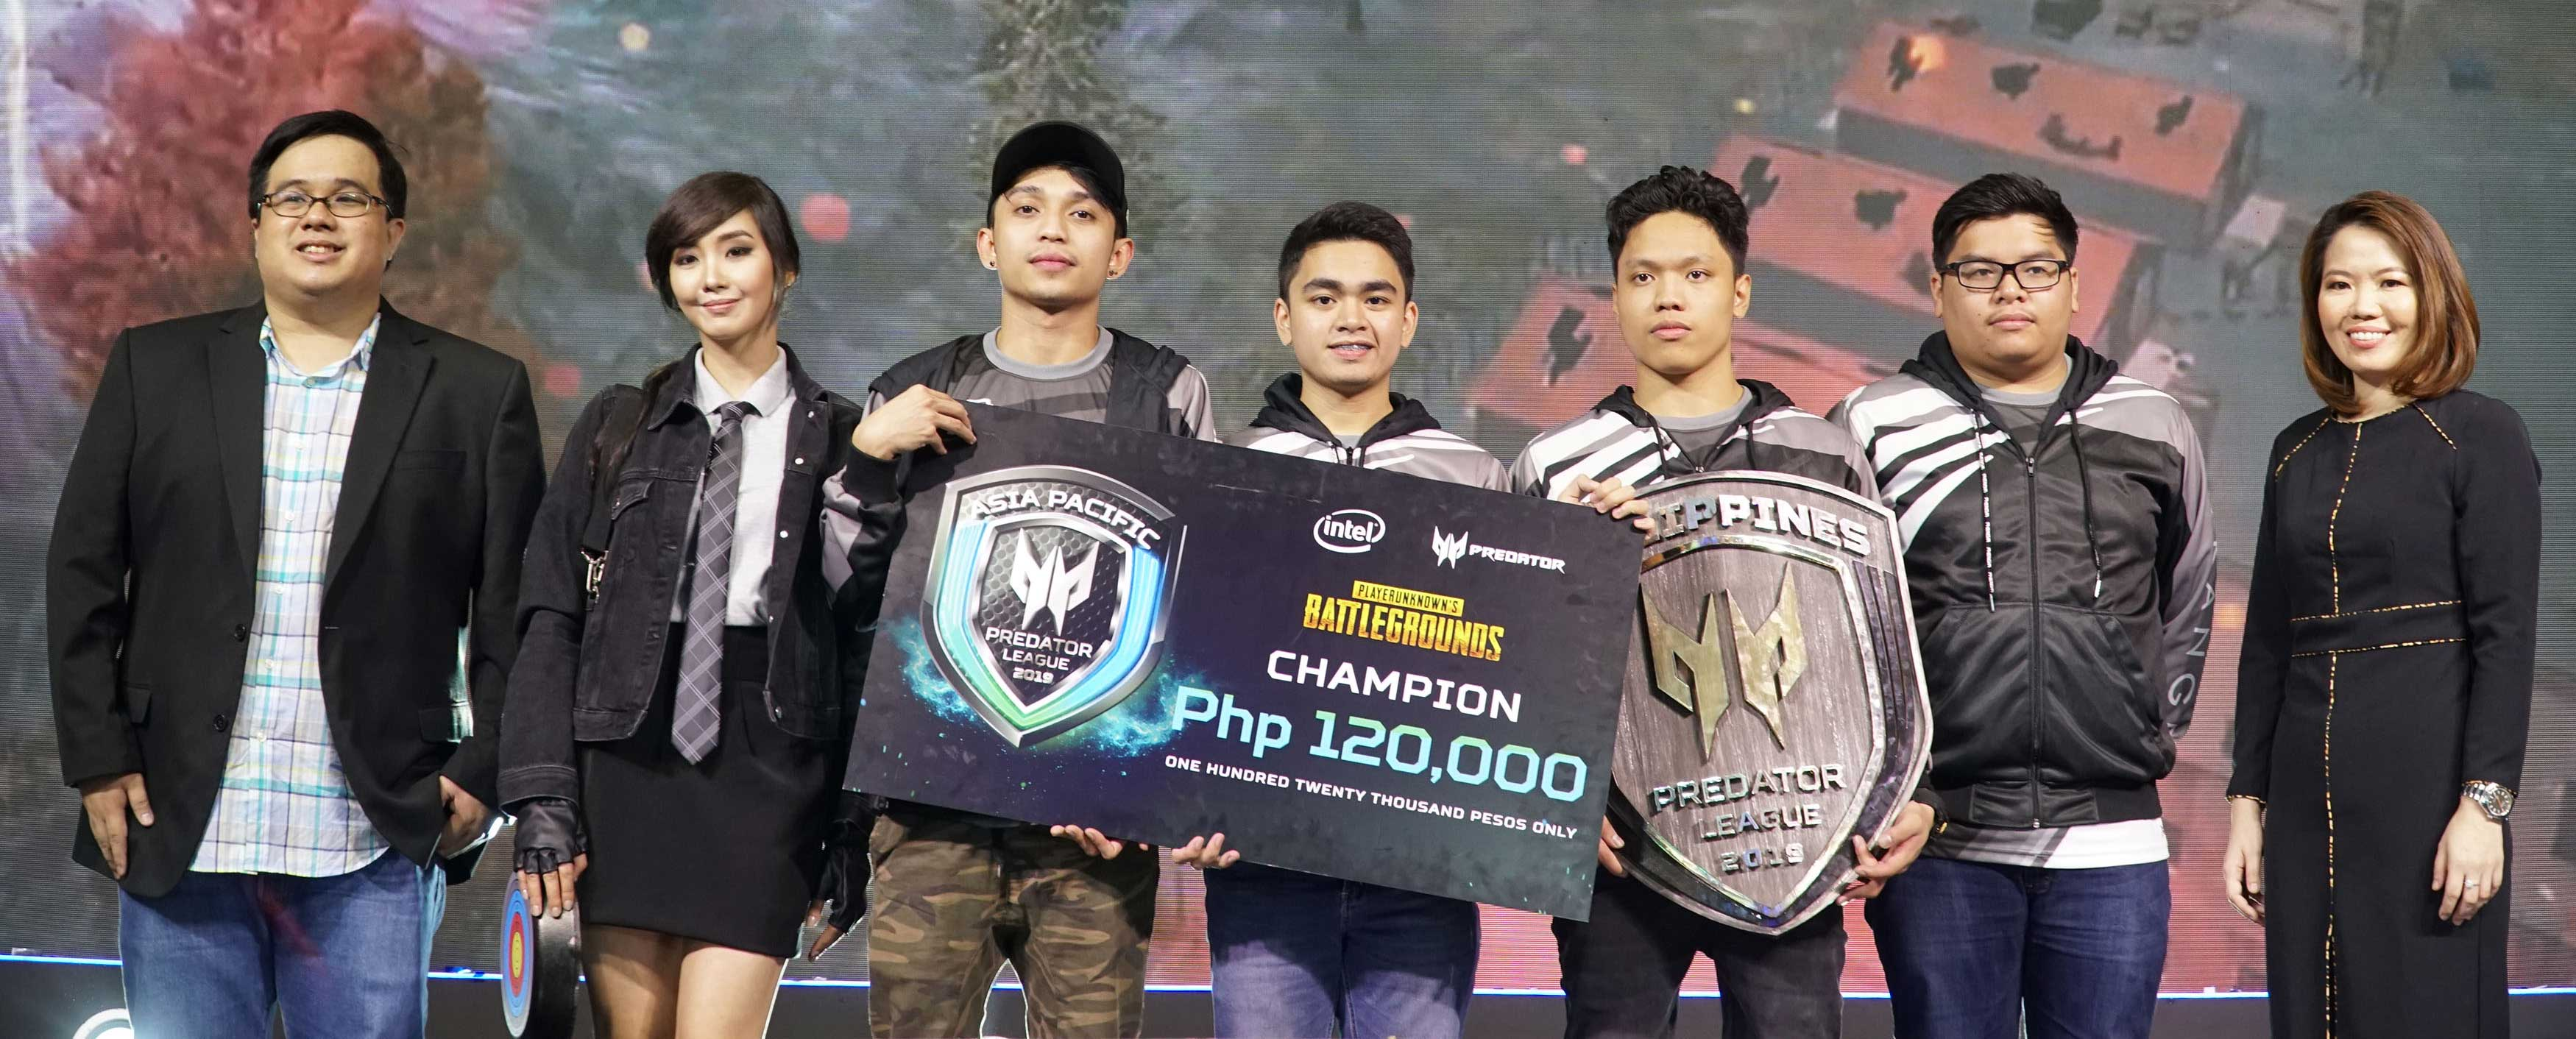 Team ARKANGEL wins Predator PUBG Philippine Finals, takes home PHP120,000 in cash prizes